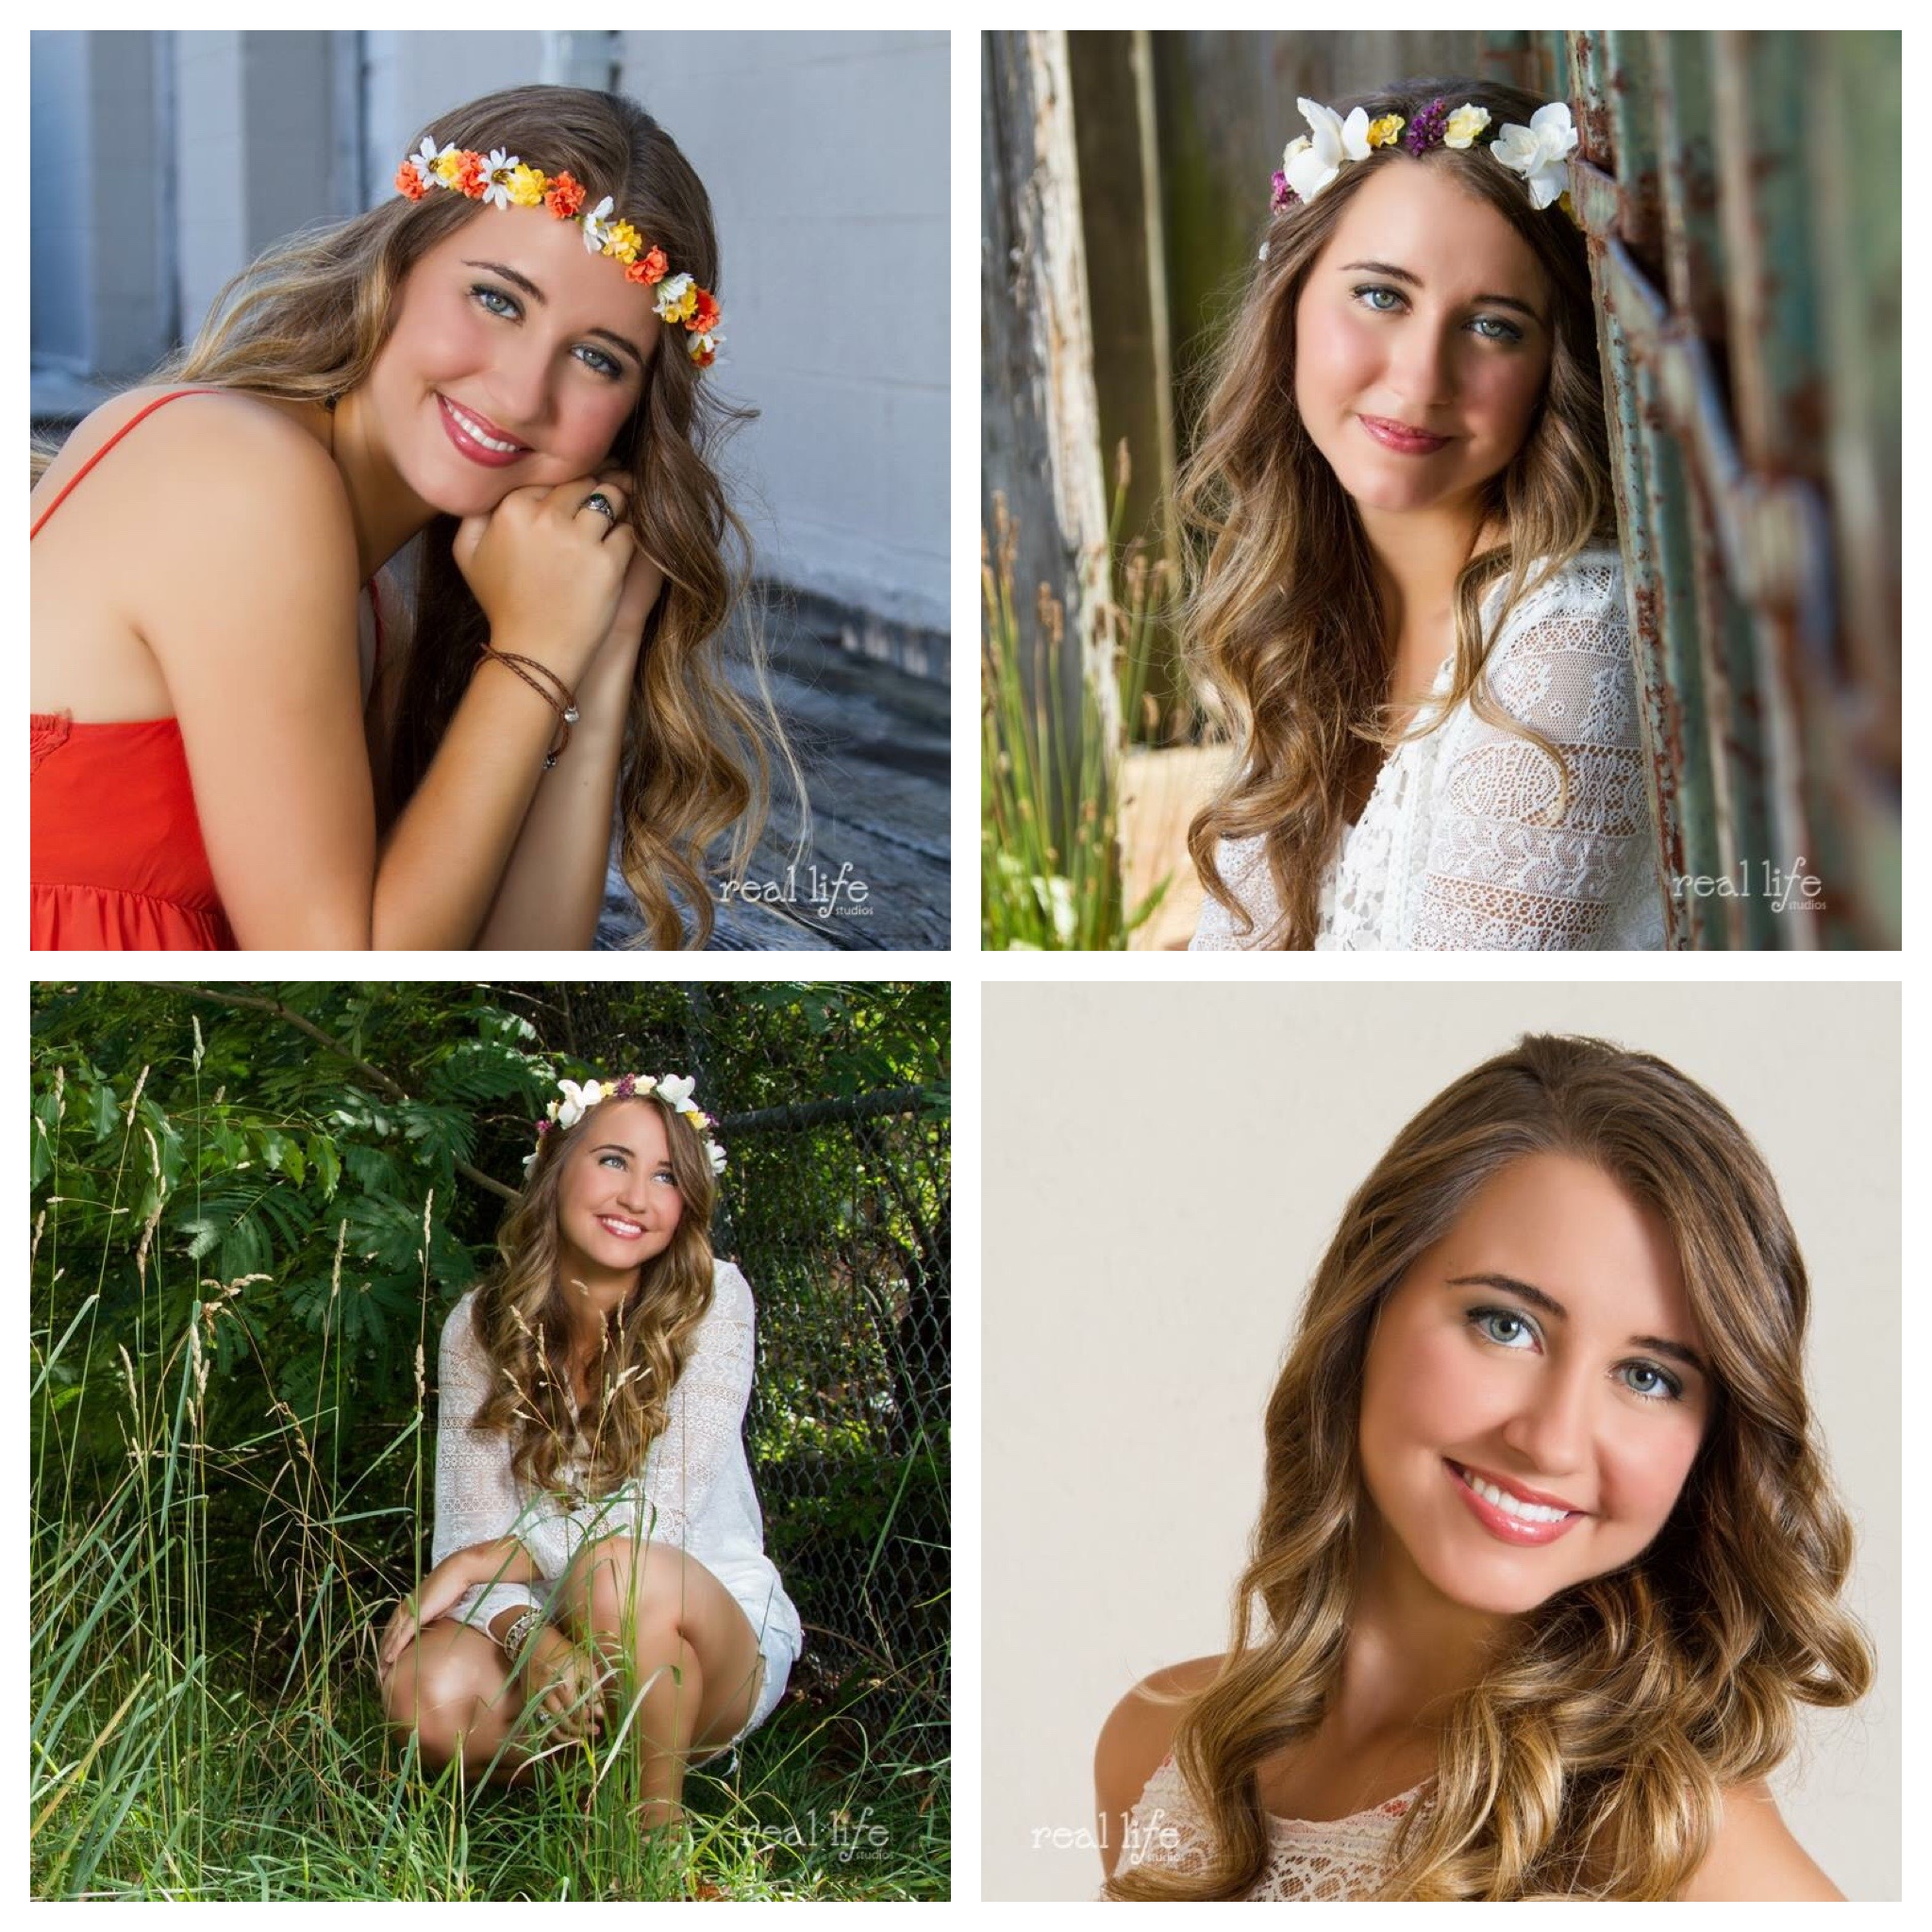 Senior portraits of girl wearing floral crown